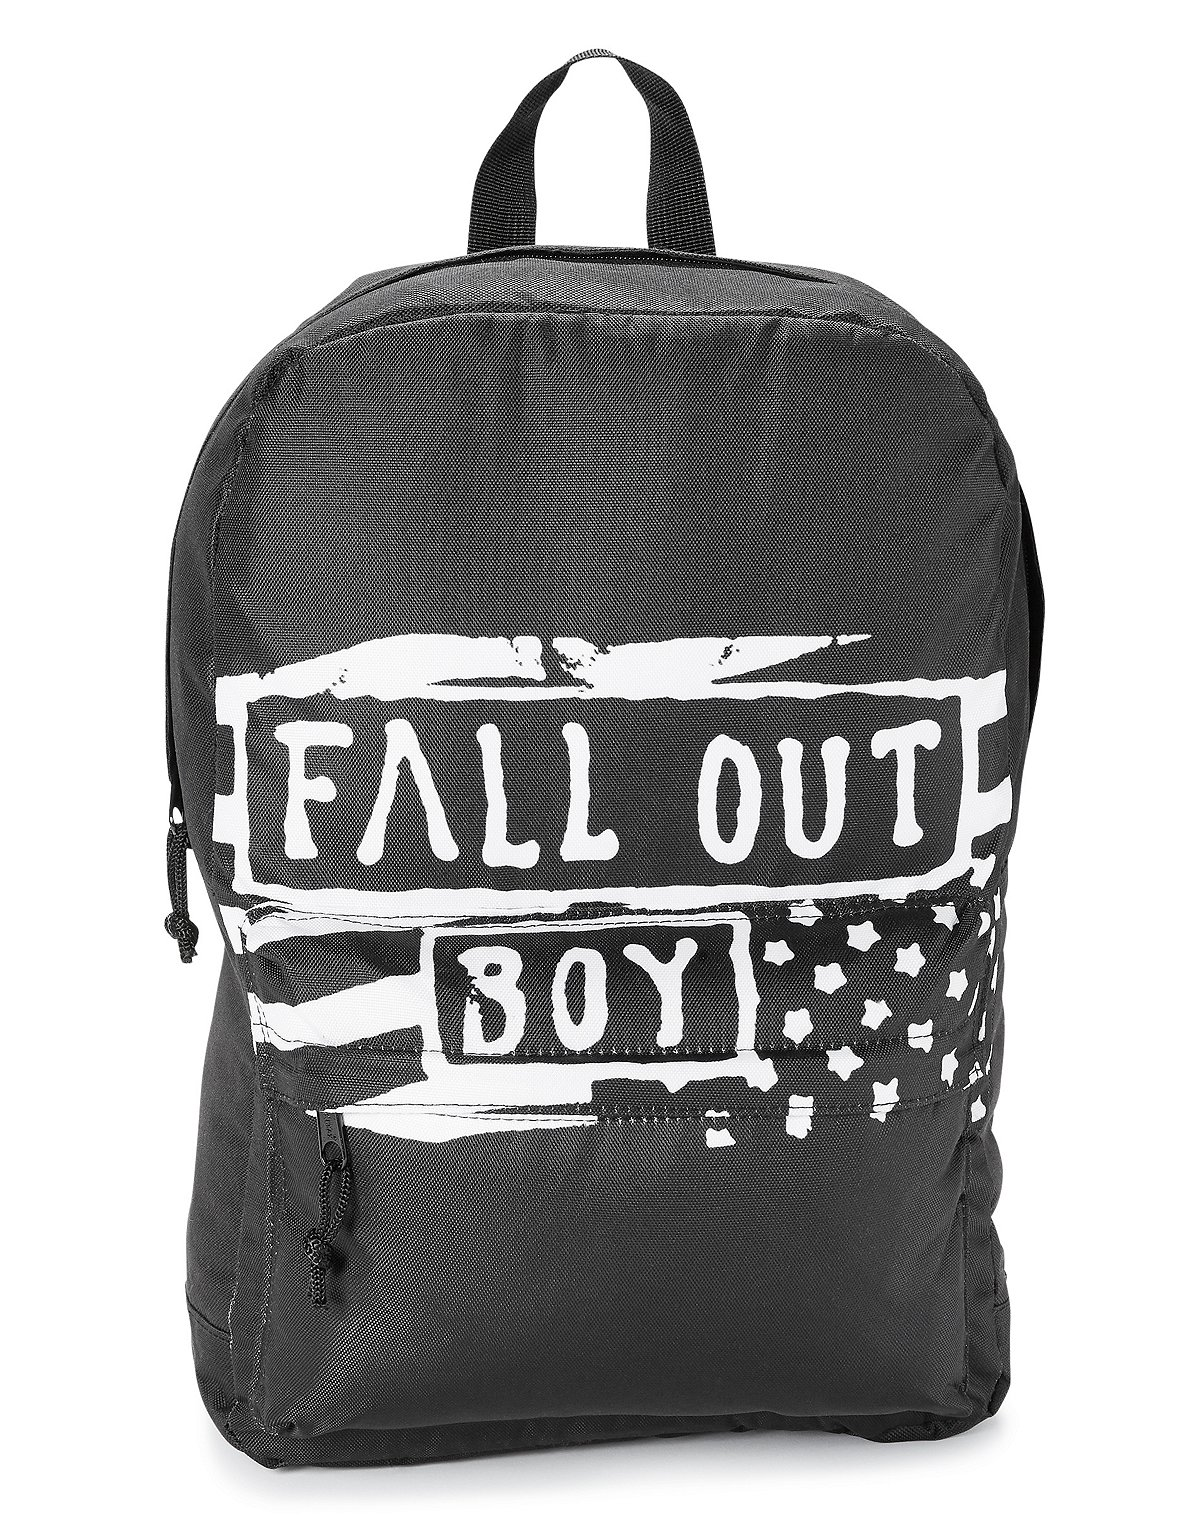 Fall Out Boy Backpack